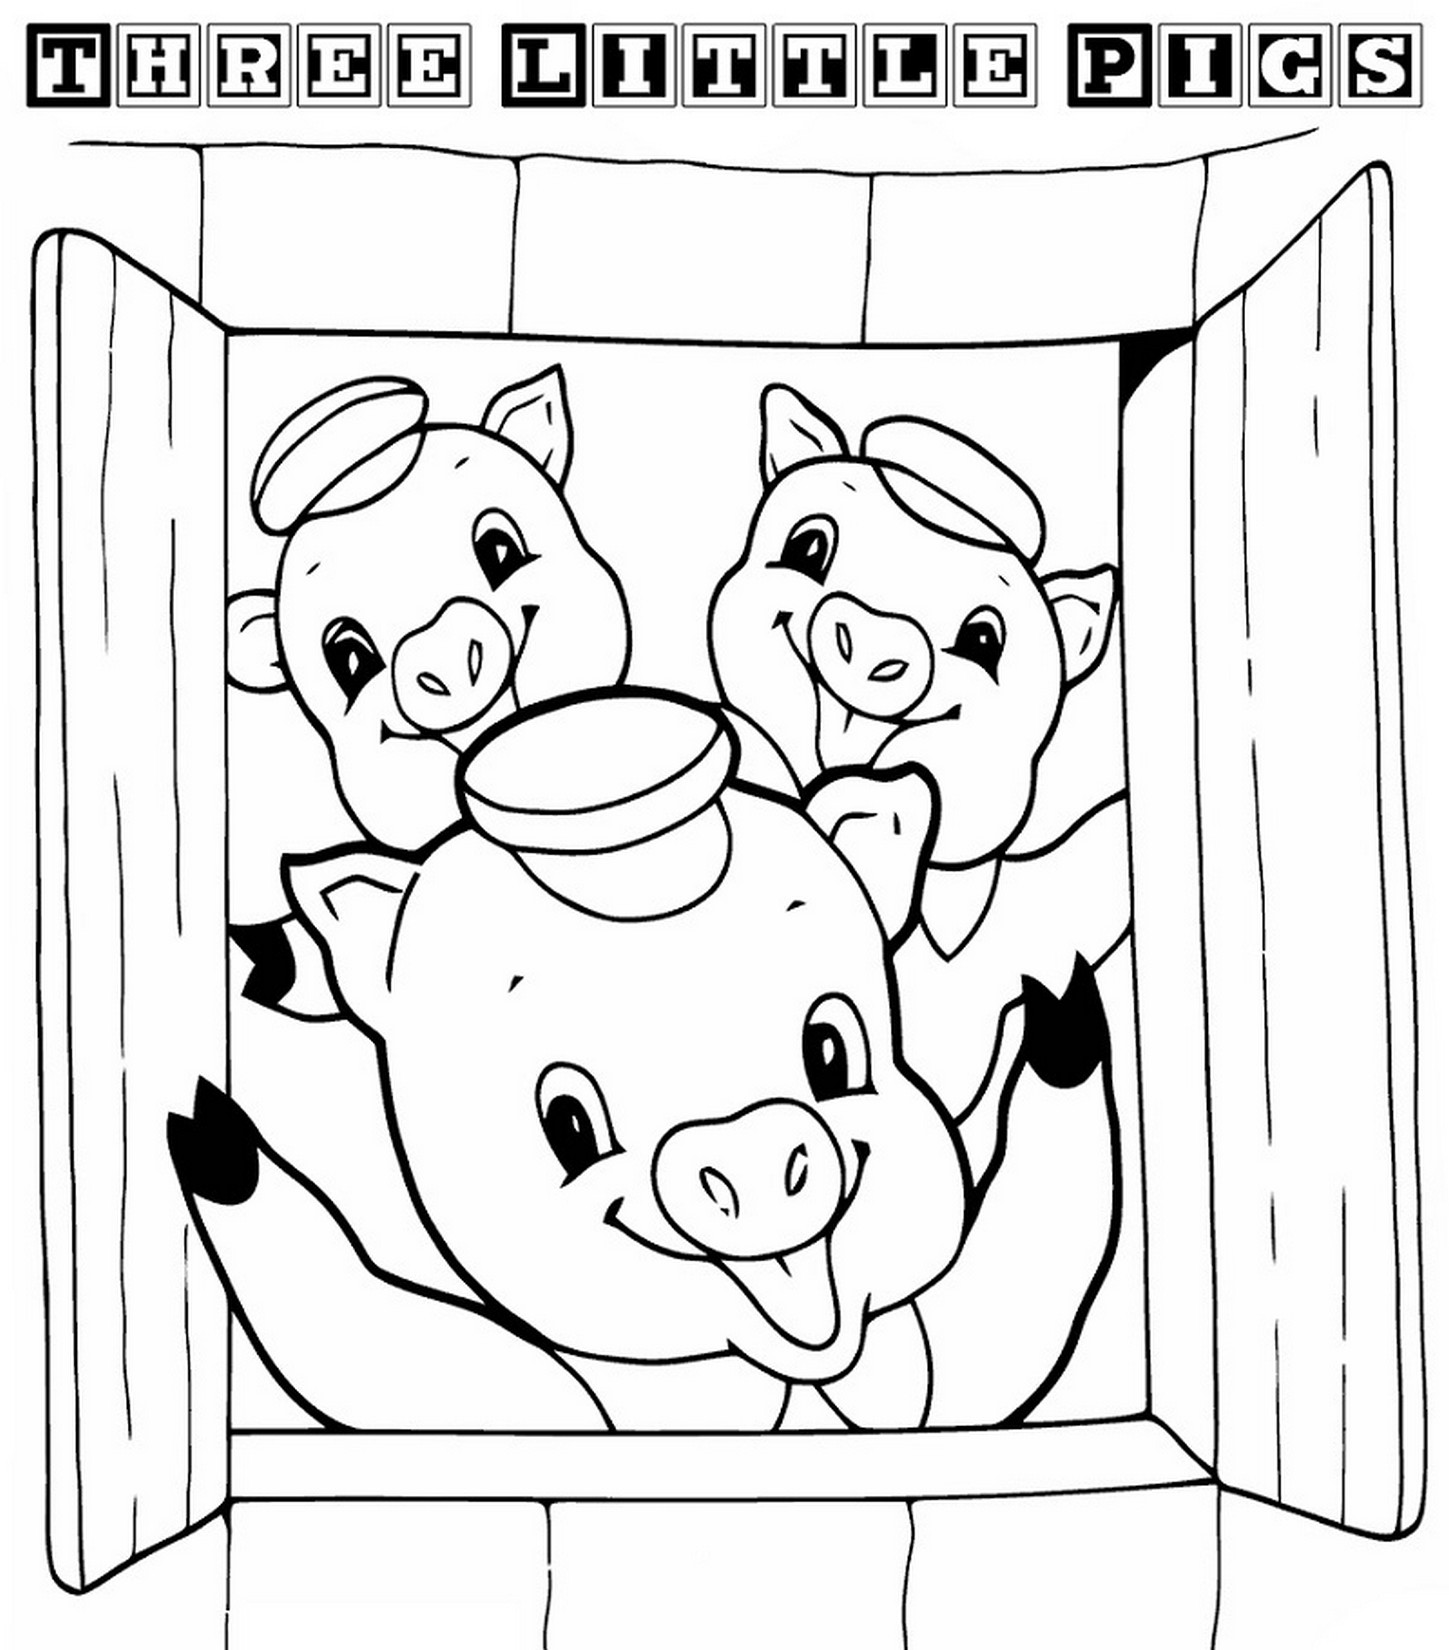 Three Little Pigs Coloring Pages For Preschool Activity Learning Printable